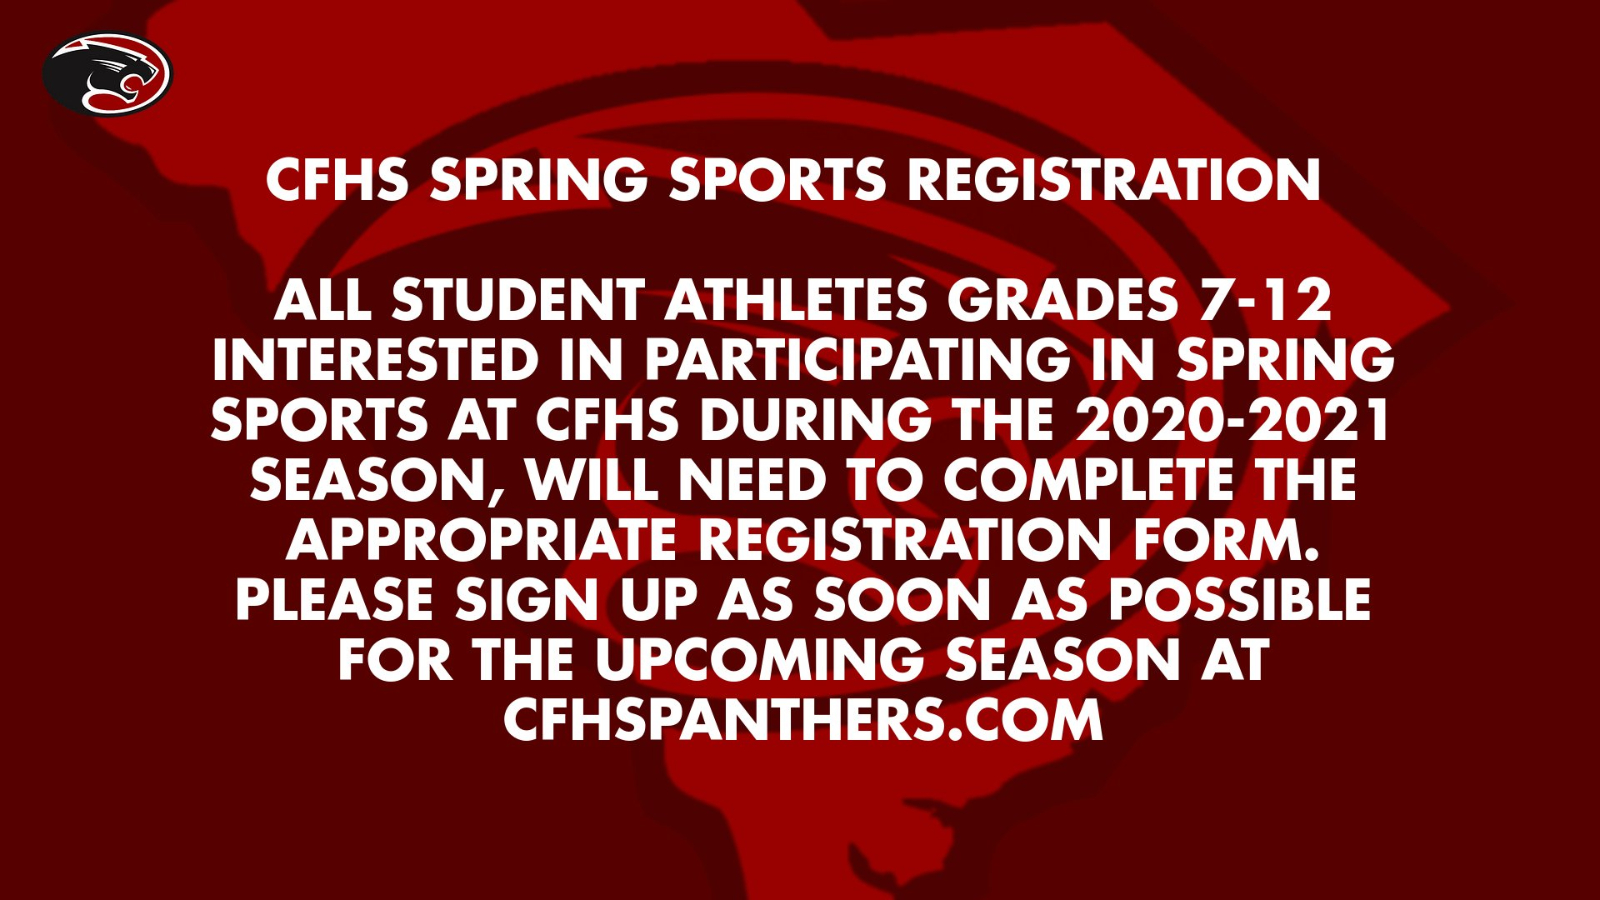 Carolina Forest Spring Sports Registration